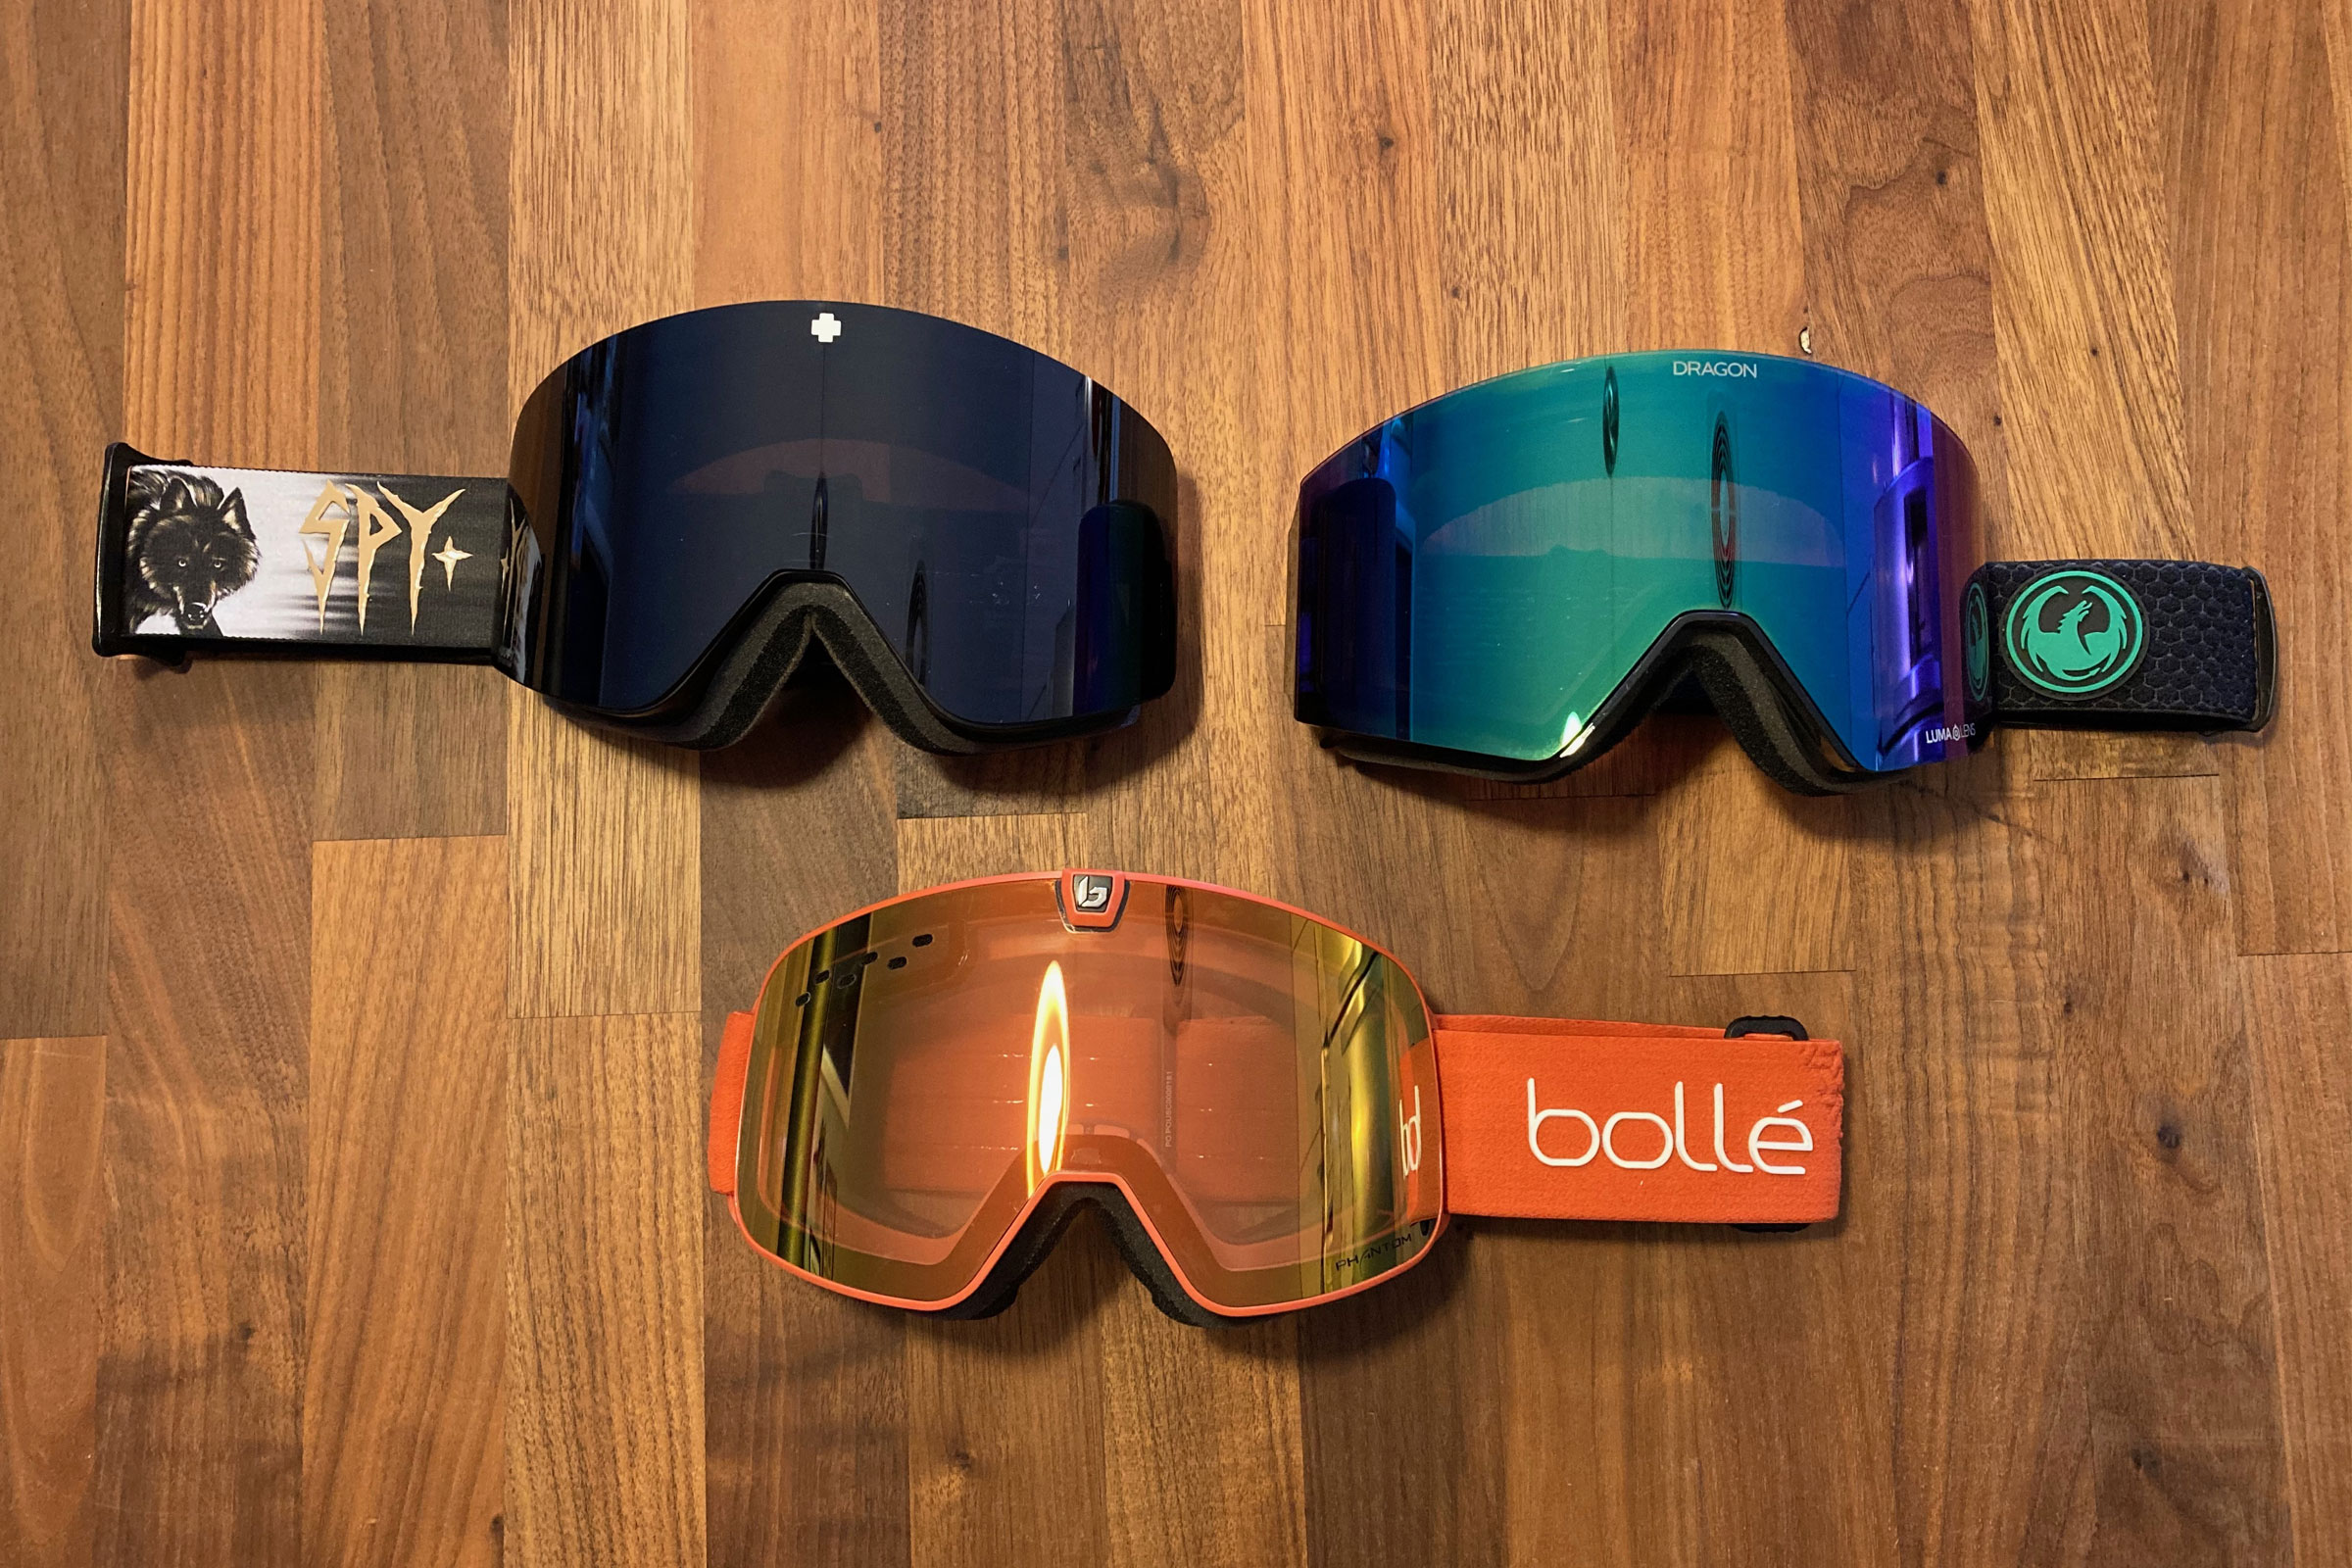 3 quick change lens goggles from 3 different brands on wood table